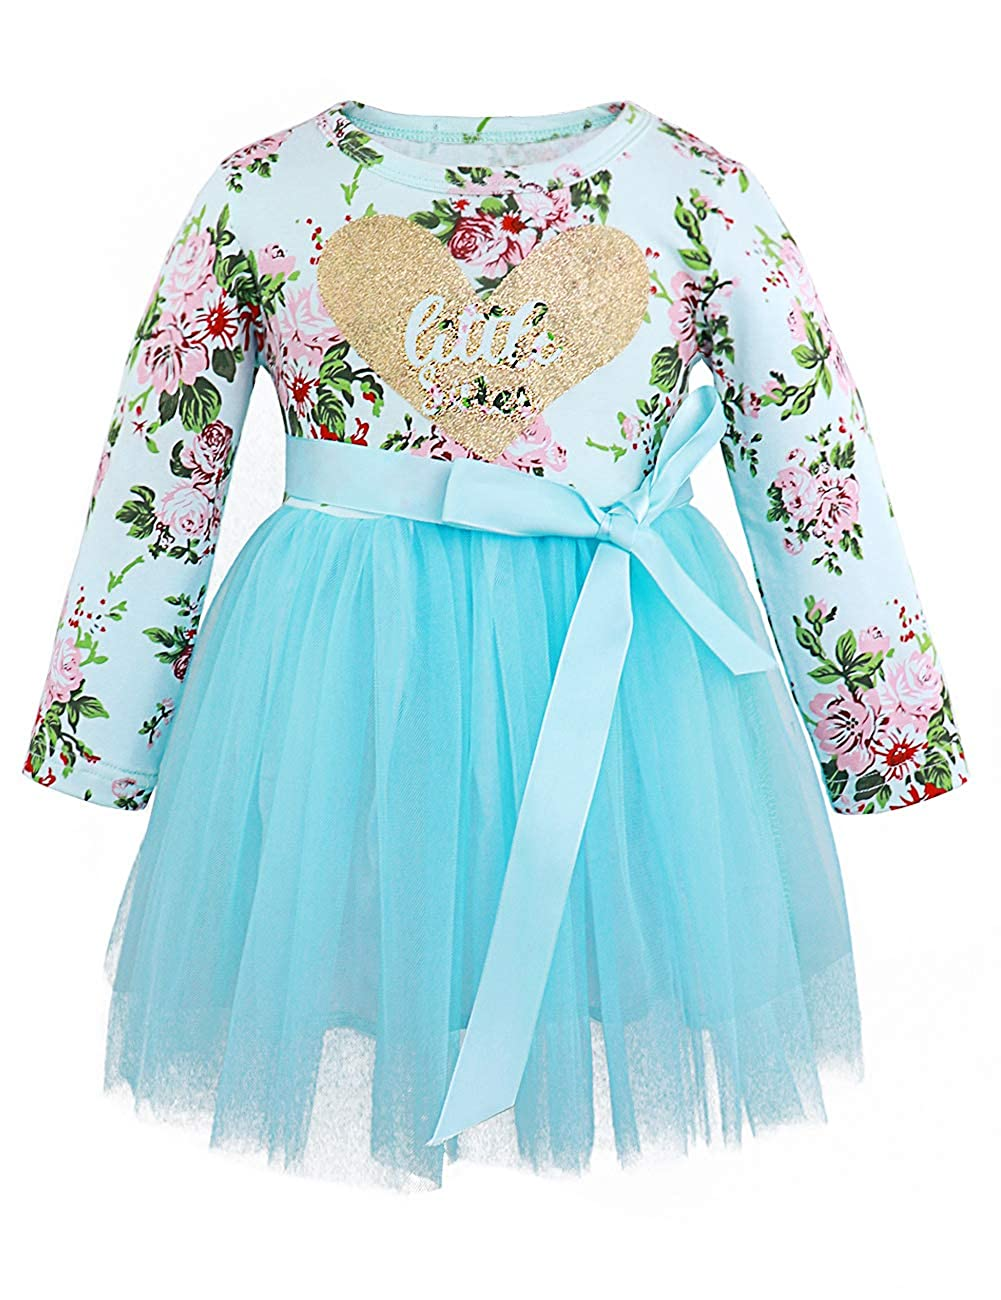 ef940eed1 Amazon.com: Toddler Girl Easter Outfits Little Sister Dress Long Sleeve  Tulle Floral Vintage Dresses Blue: Clothing